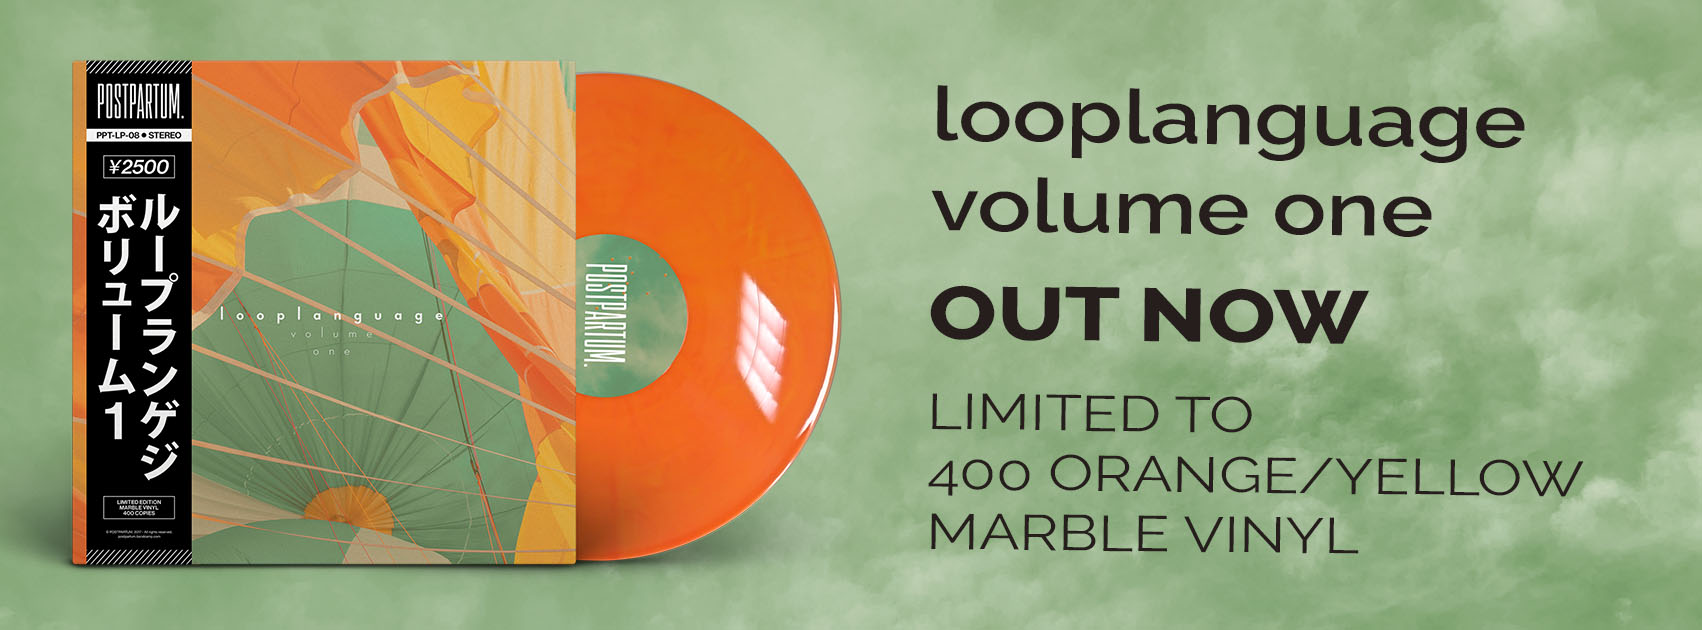 LoopLanguage Vol. One | Hip-Hop Instrumental Vinyl Record